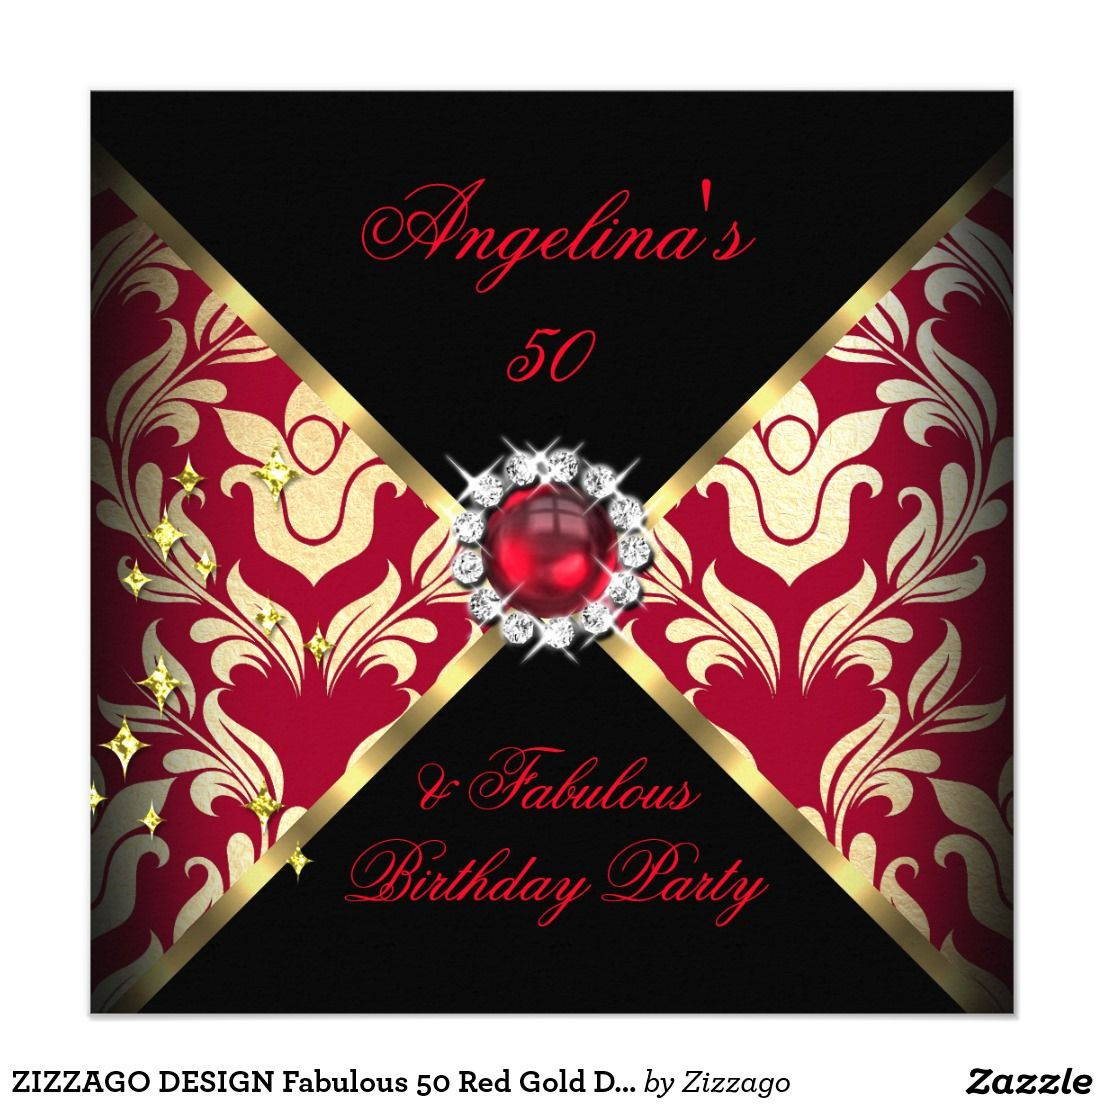 ZIZZAGO DESIGN Fabulous 50 Red Gold Damask Party 5.25x5.25 Square ...